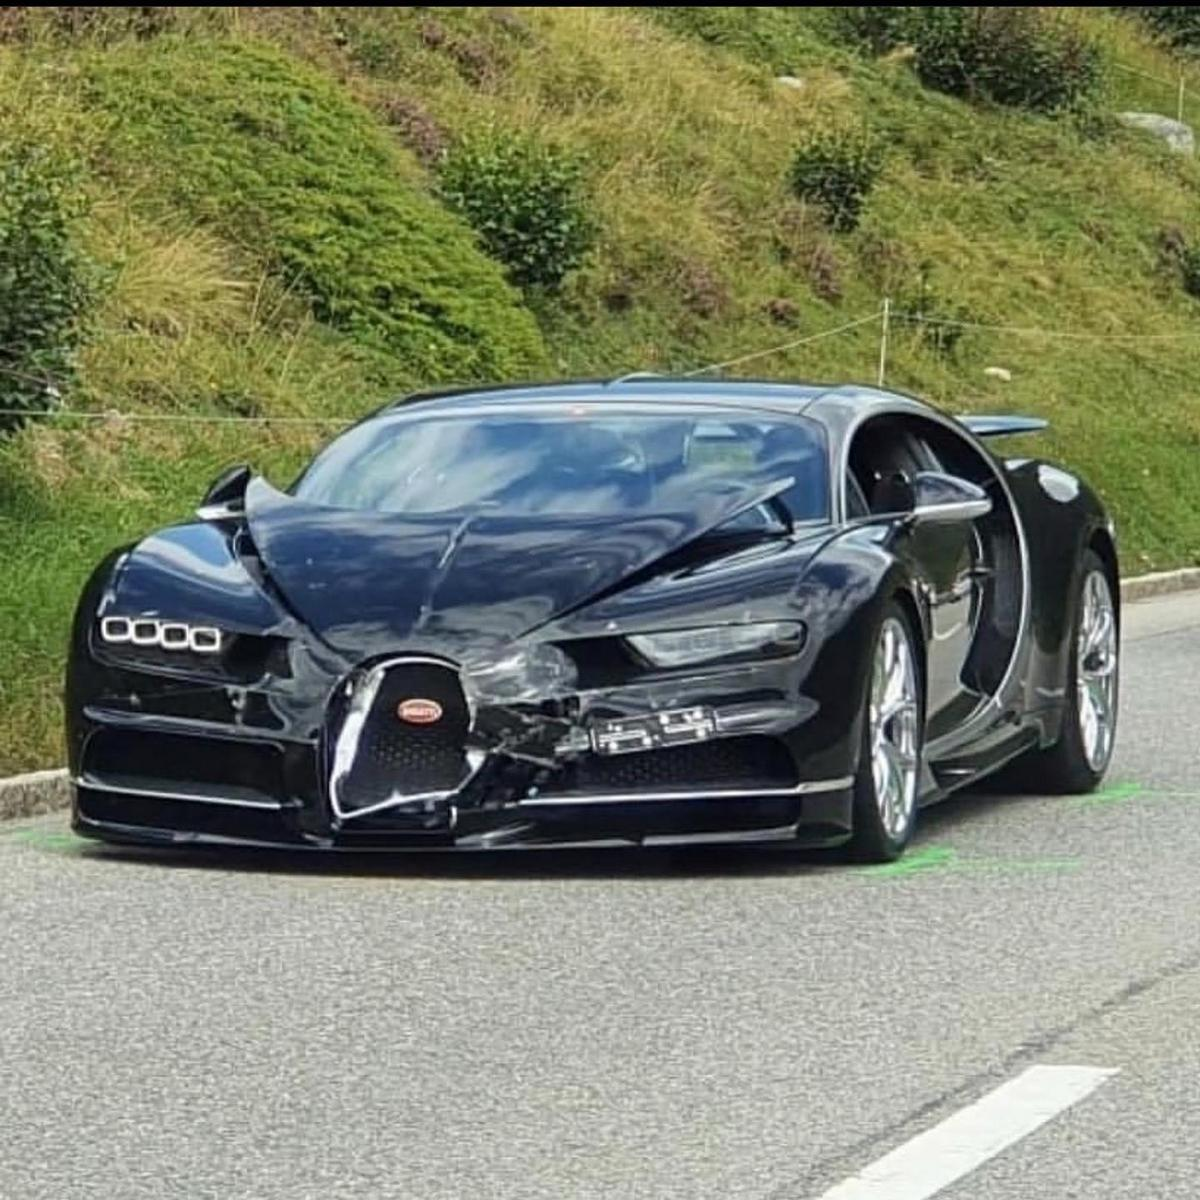 Just painful – Bugatti Chiron crashes into Porsche 911 in Switzerland while trying to overtake a motorhome